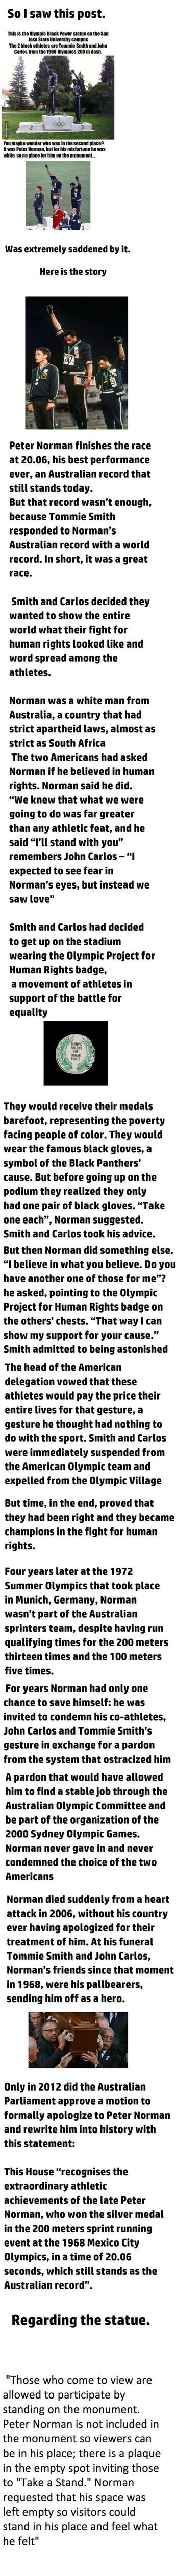 Peter Norman. Giving up on his dreams to set a mark on human rights. The real story behind the statues.